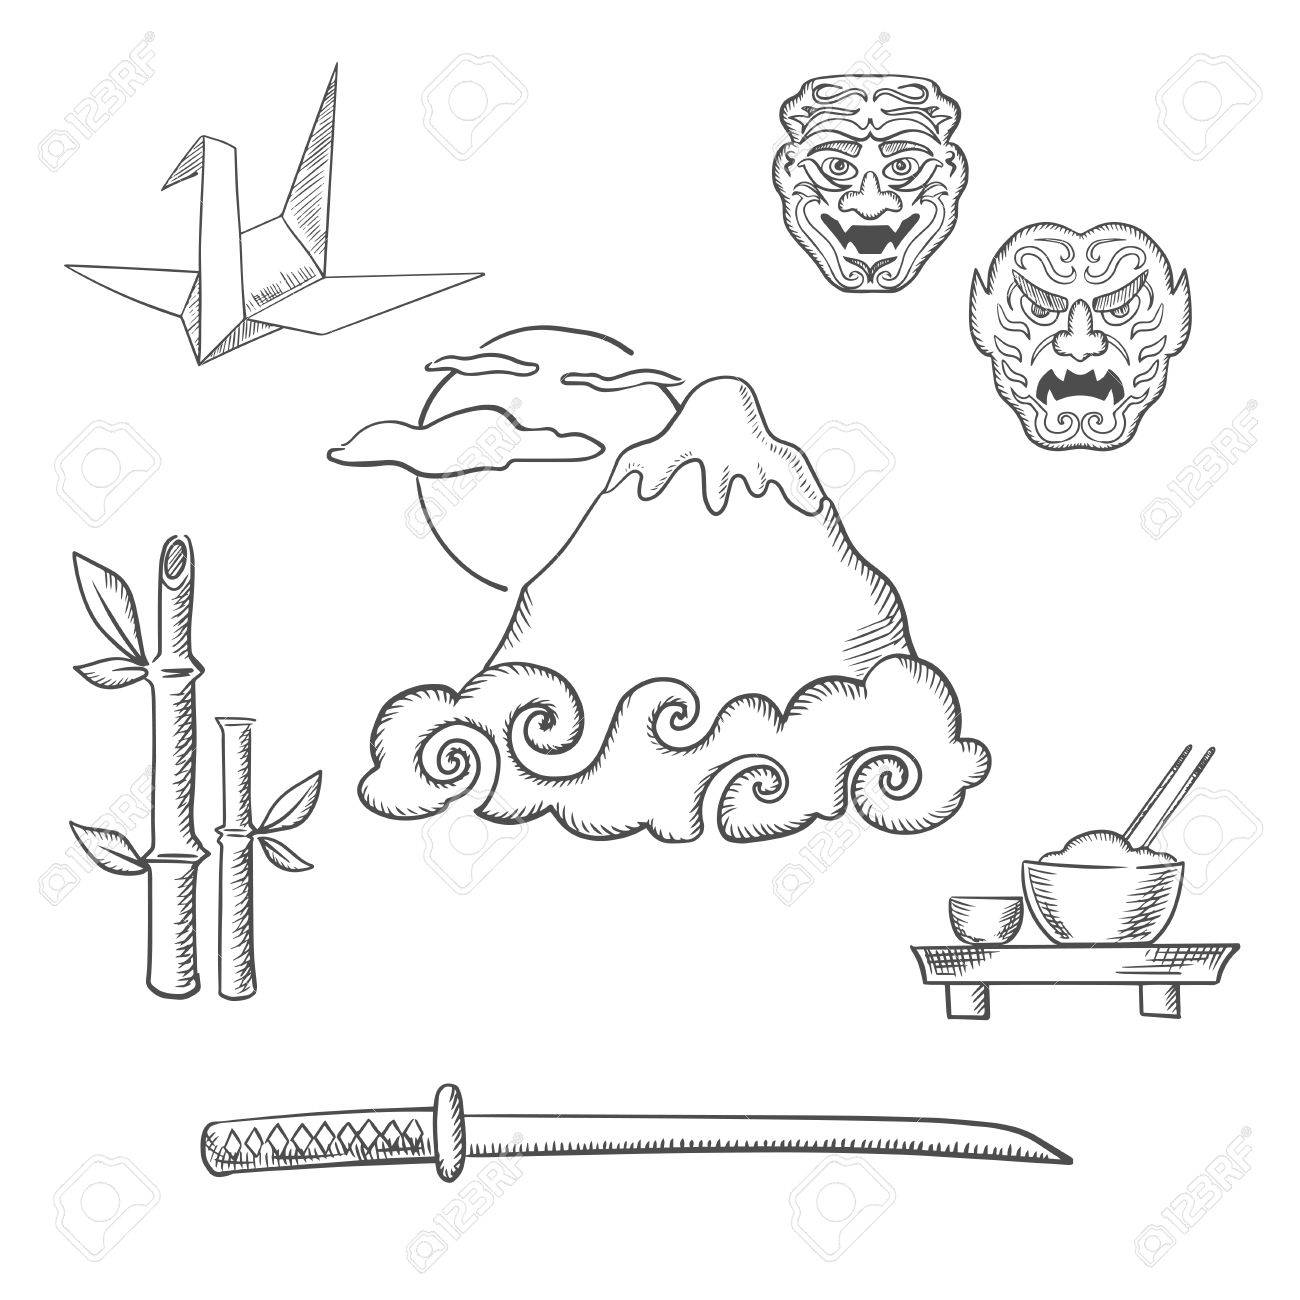 japan travel design in sketch style fujiyama mountain in clouds Food Web Levels japan travel design in sketch style fujiyama mountain in clouds and big sun surrounded by